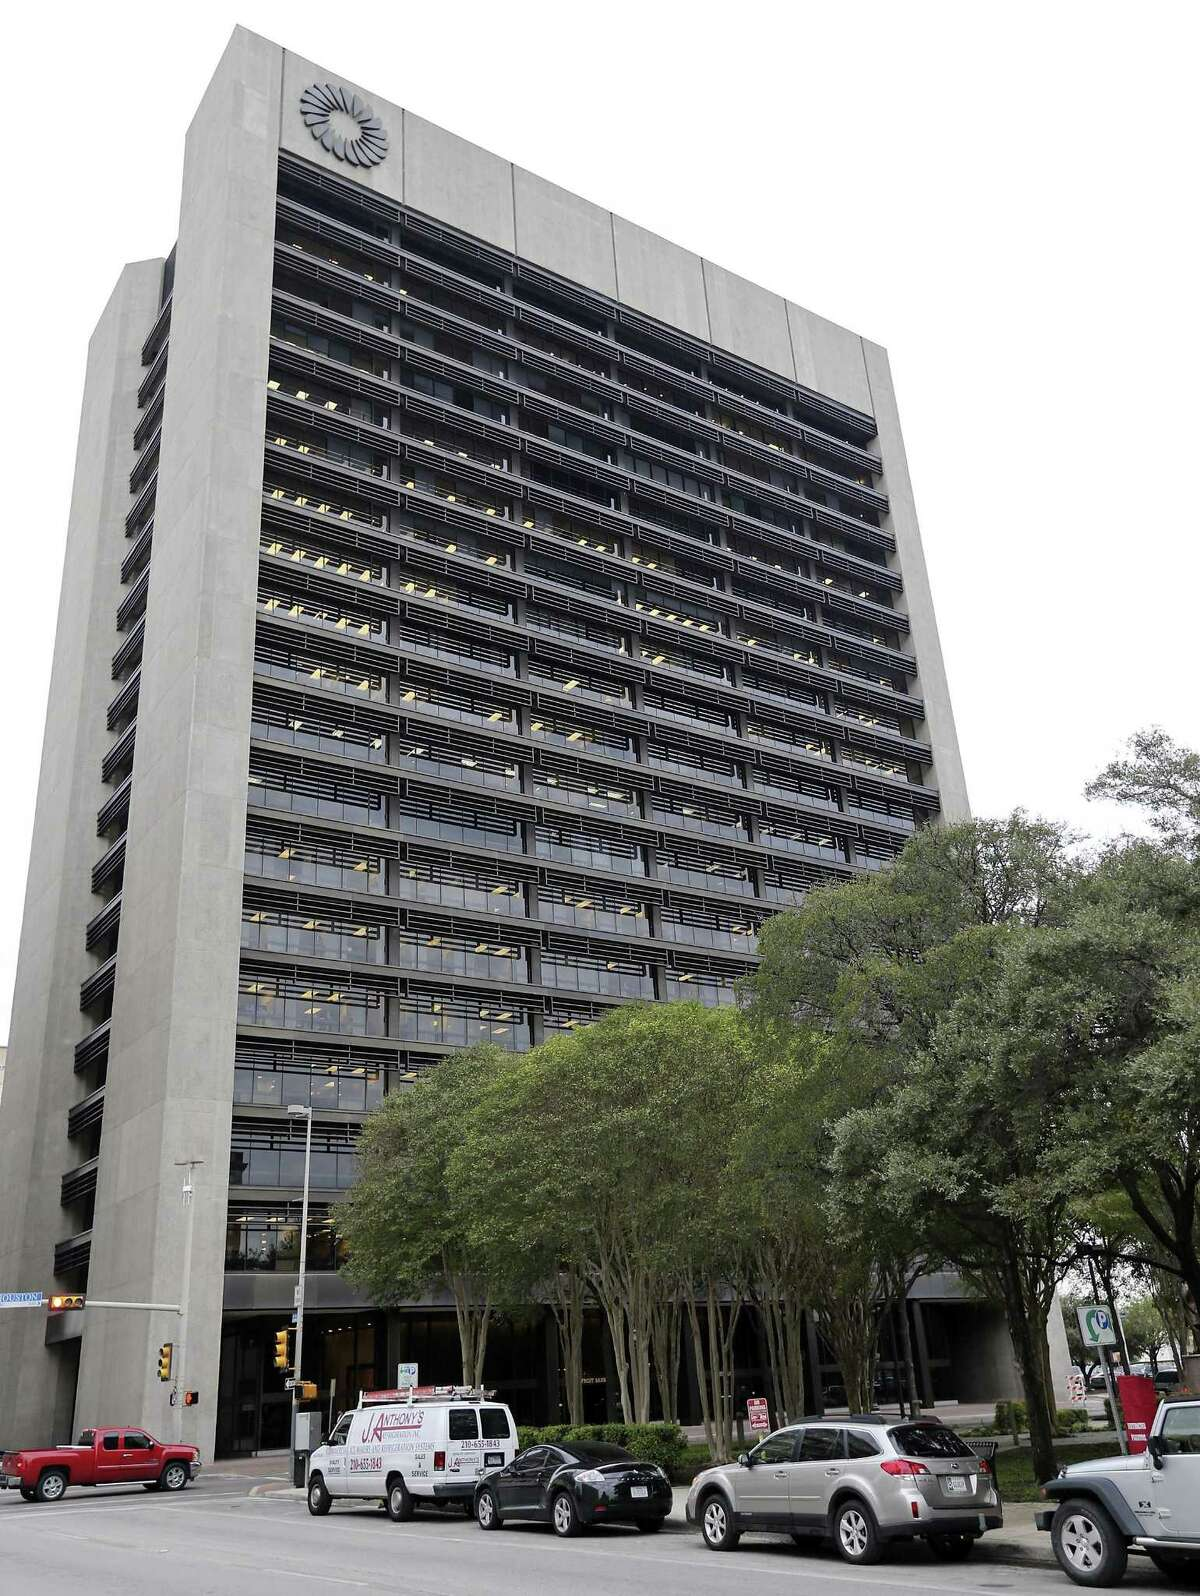 A view of the Frost Bank Tower in downtown San Antonio.